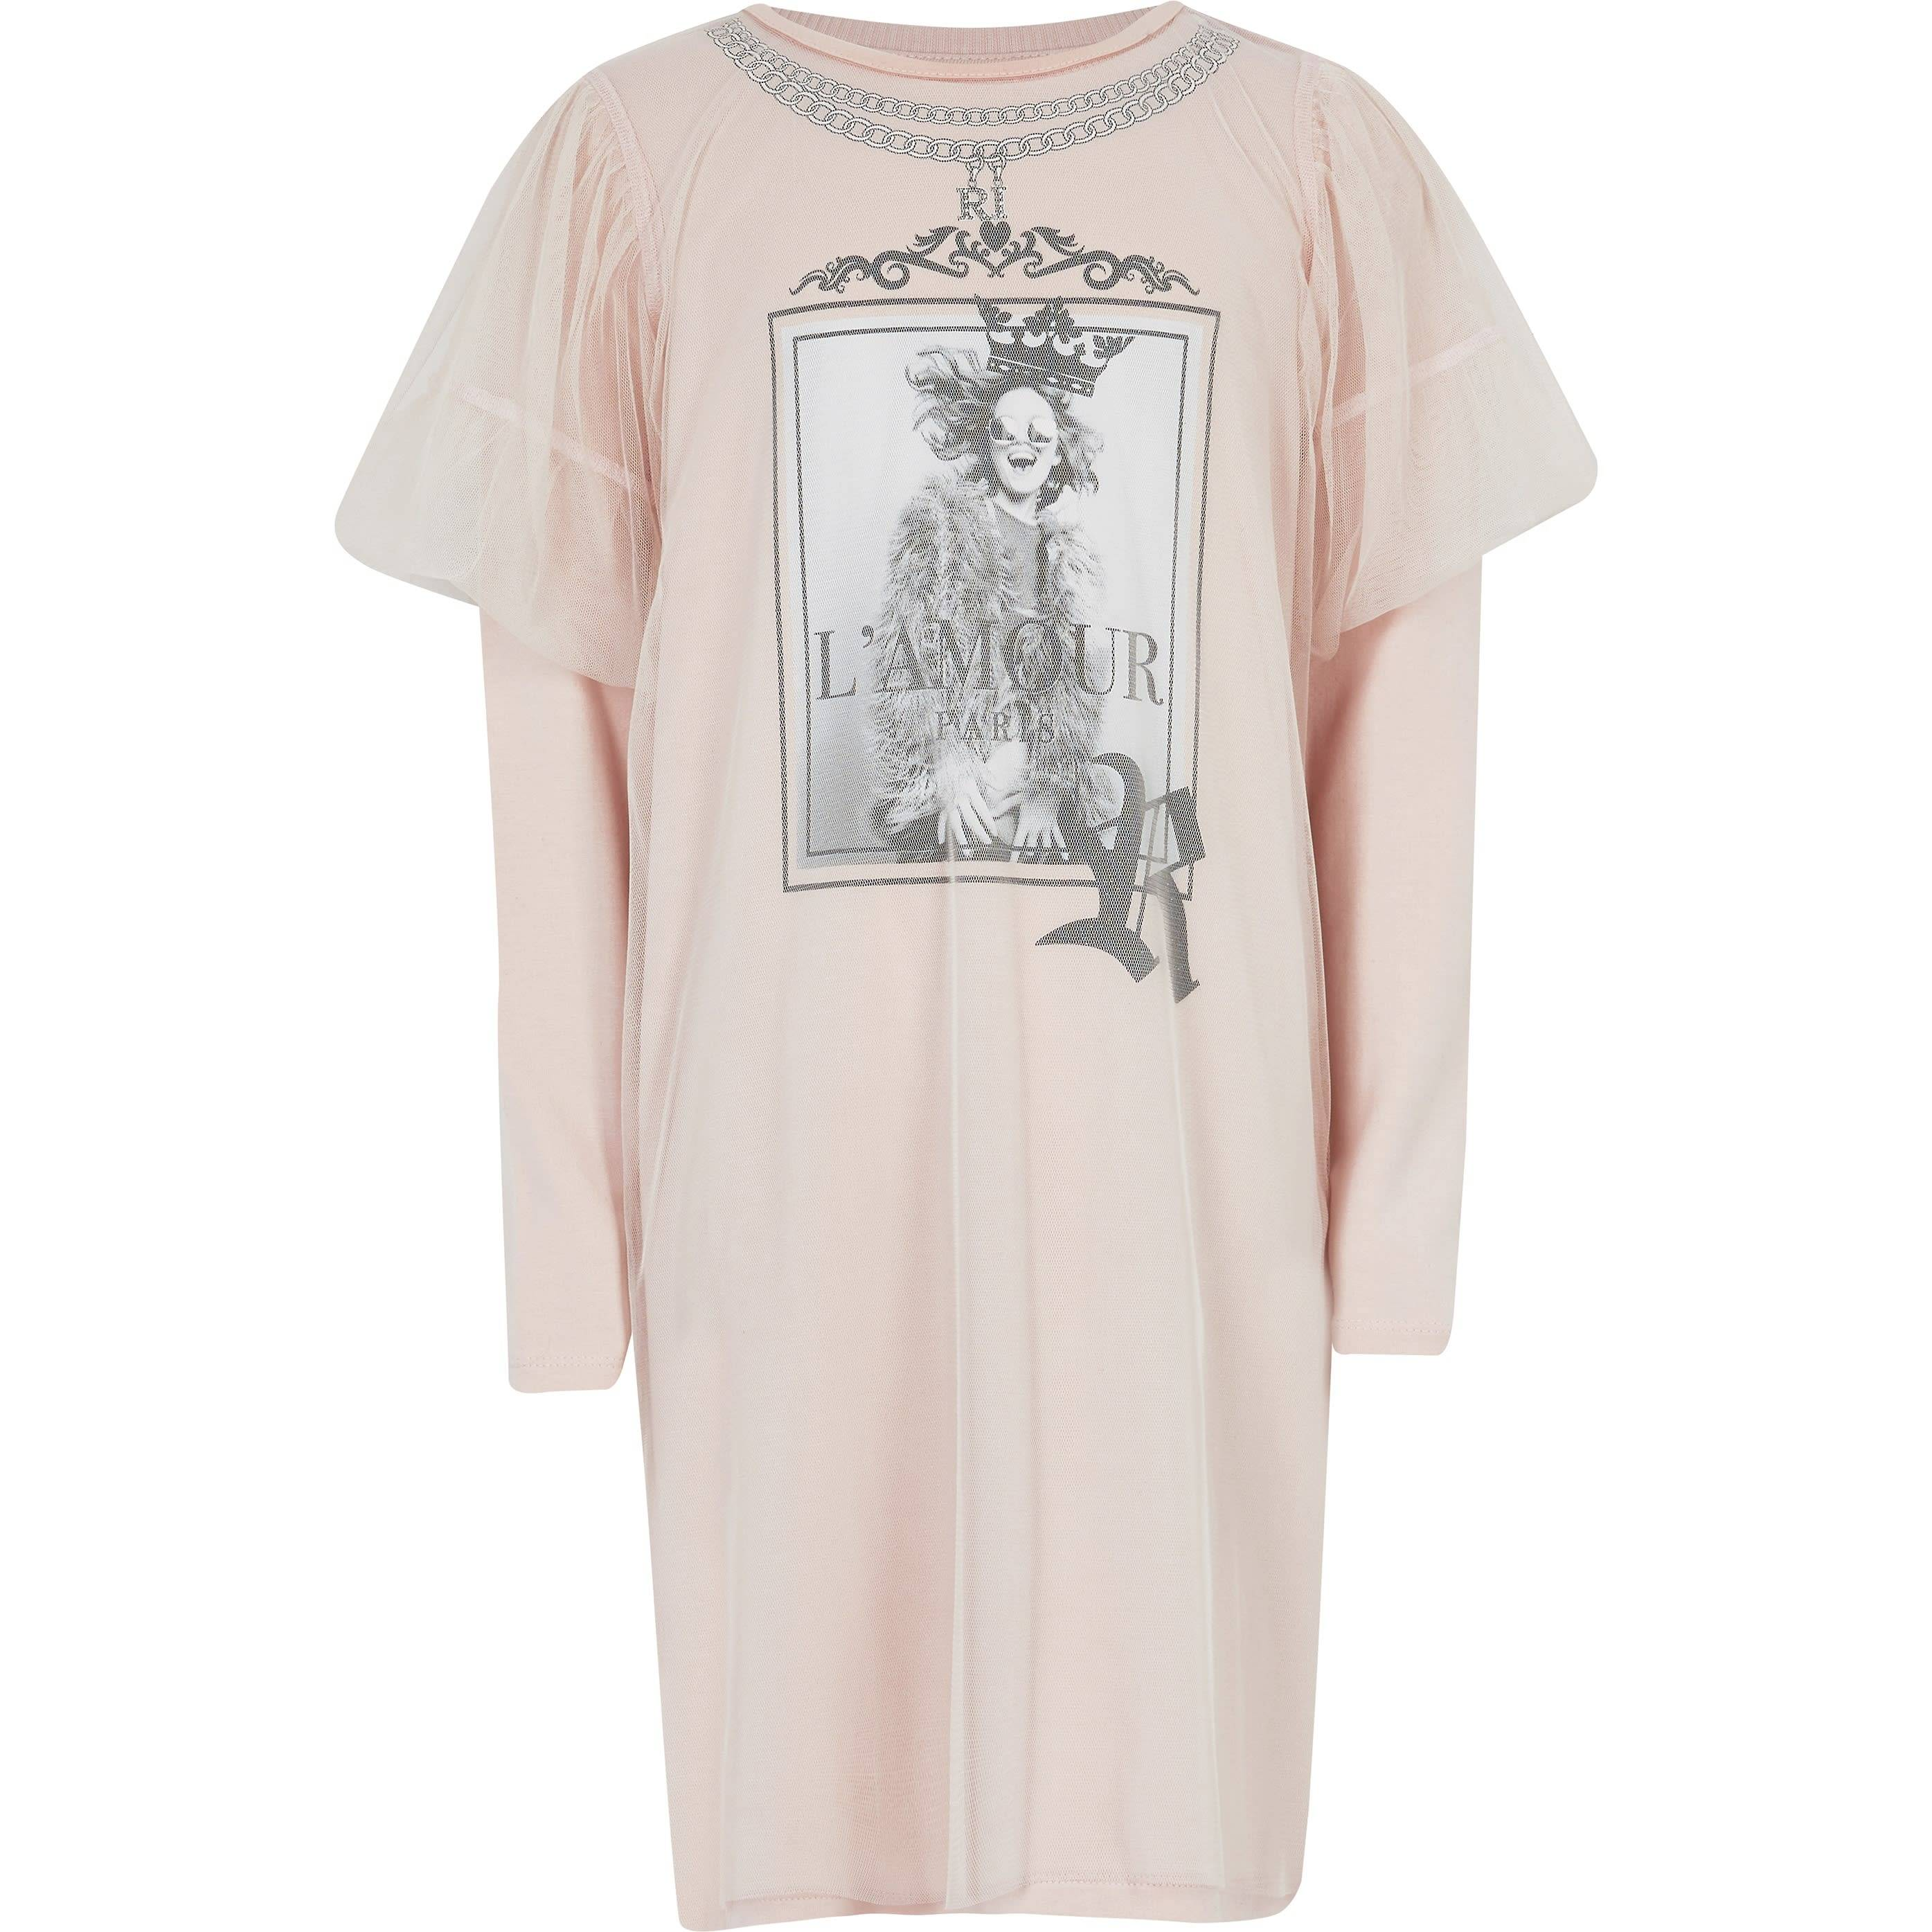 River Island Girls Pink printed mesh T-shirt dress (9-10 Yrs)